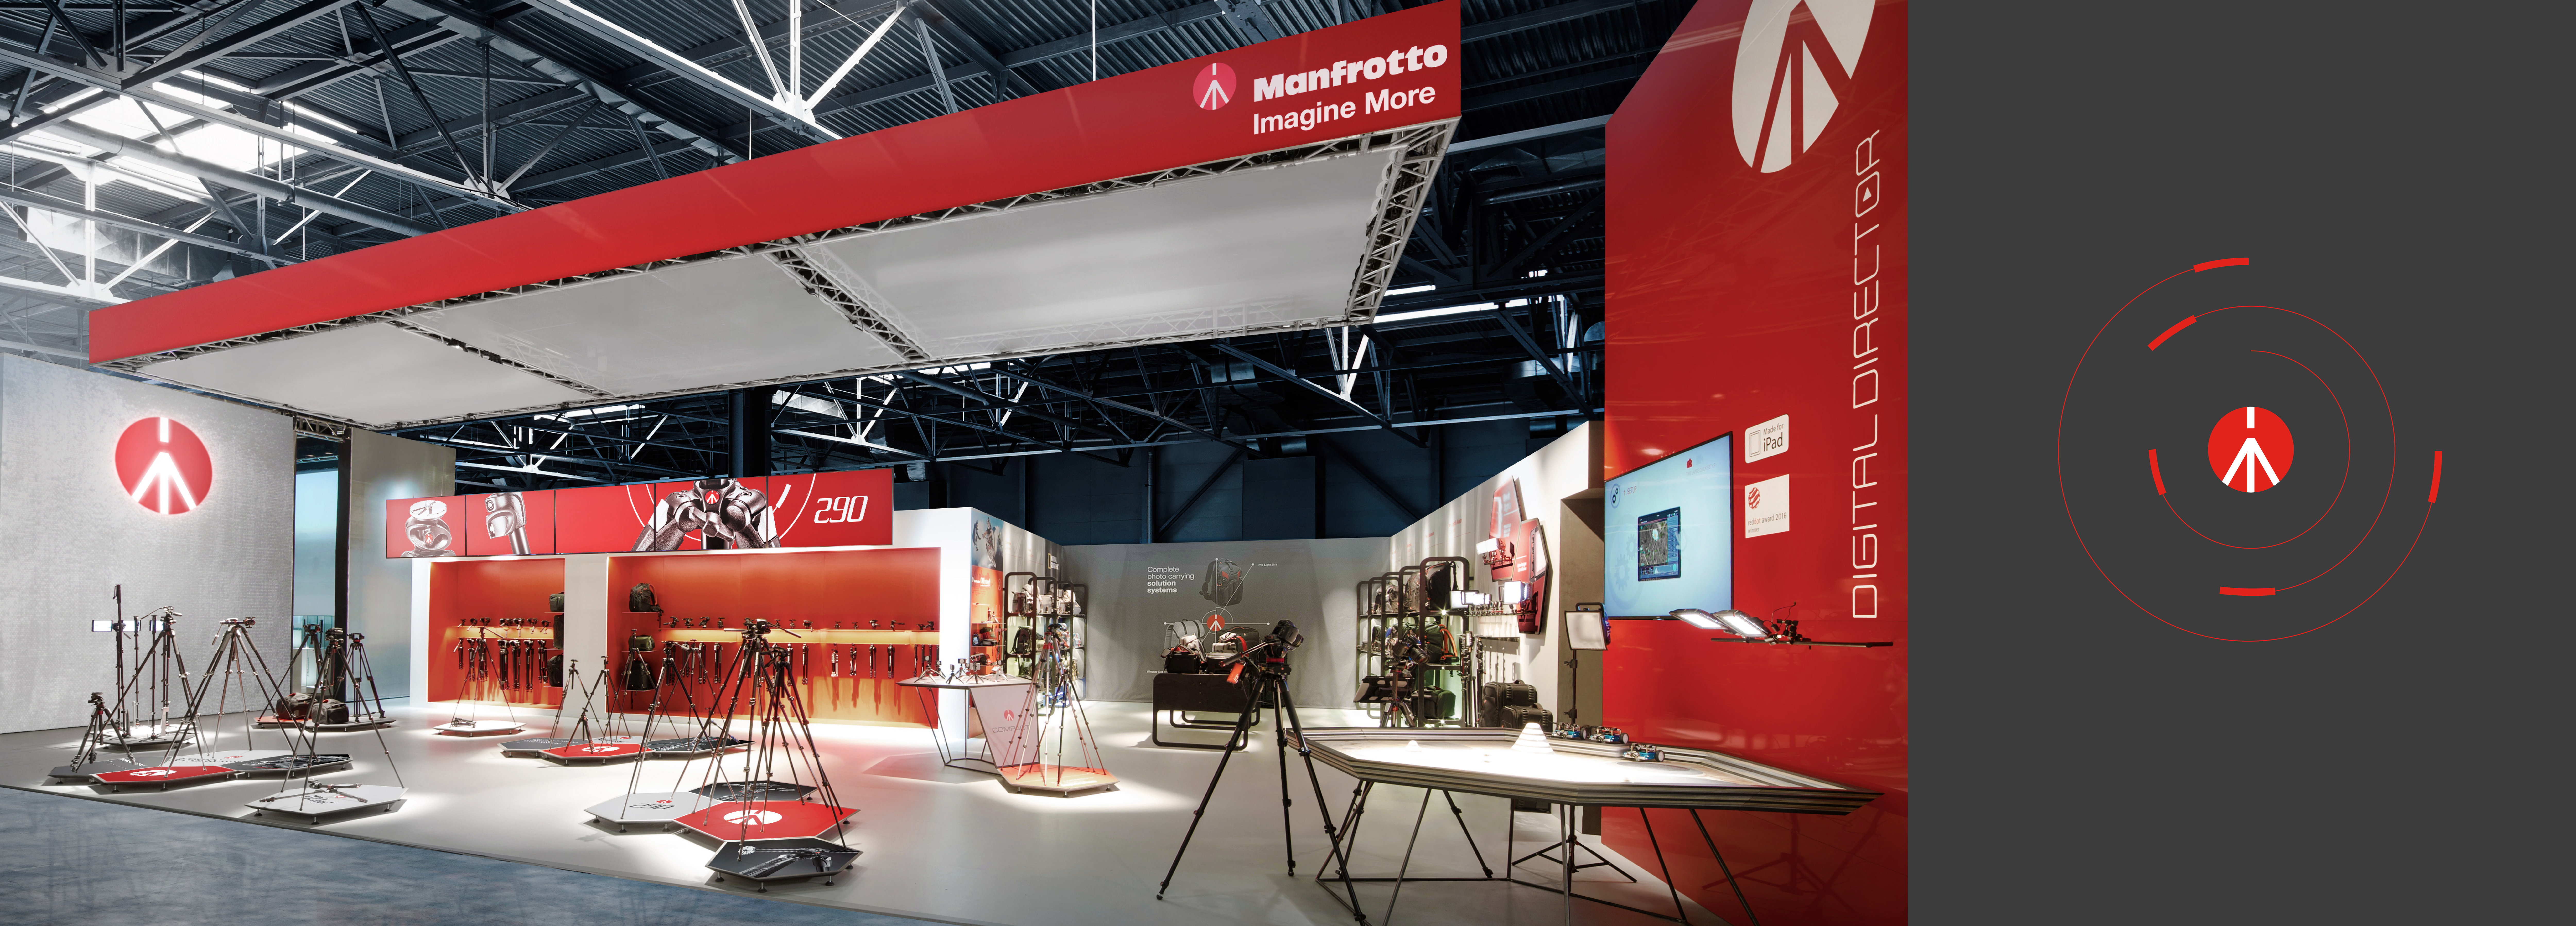 Manfrotto - Manfrotto<br>Photokina